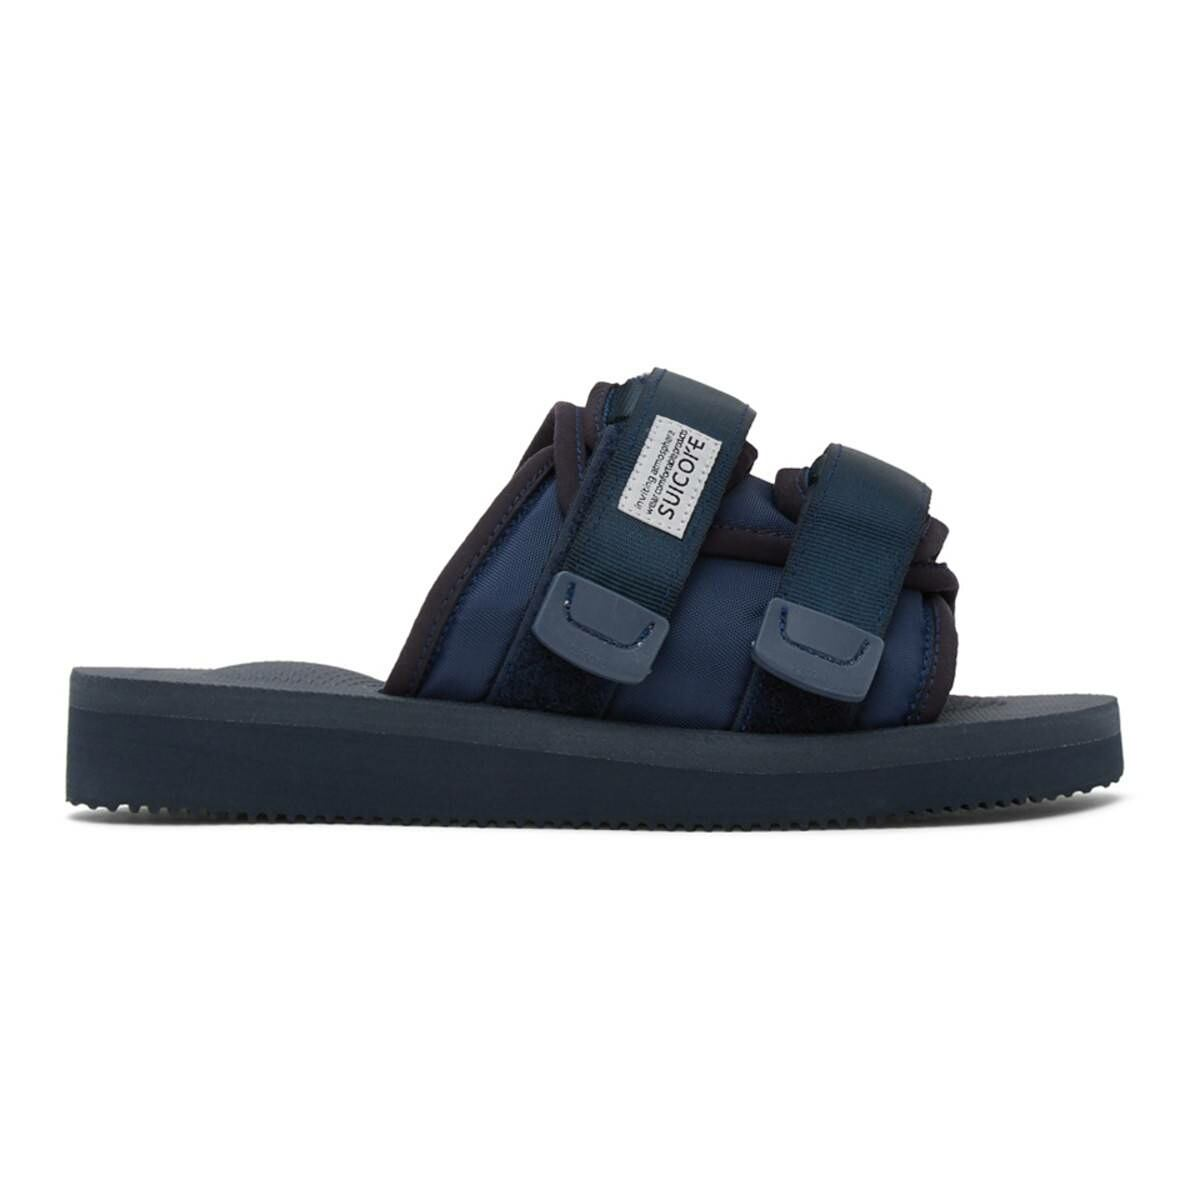 Suicoke Navy Moto-CAB Sandals Ssense USA MEN Men SHOES Mens SANDALS